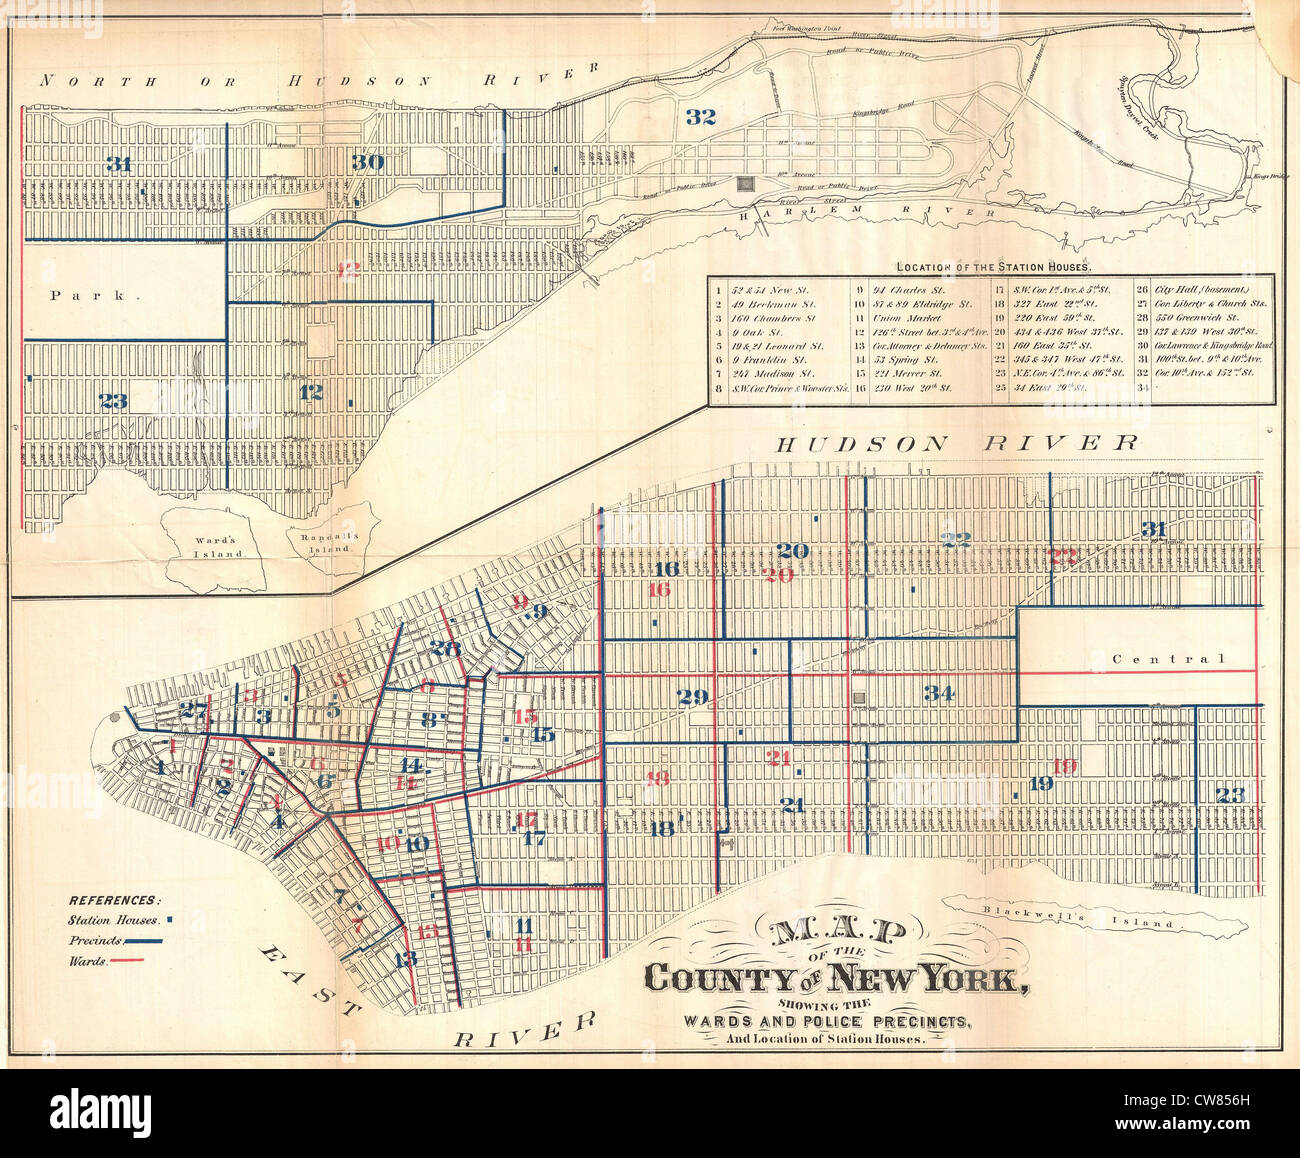 1871 Hardy Map of New York City Police Departments - Stock Image